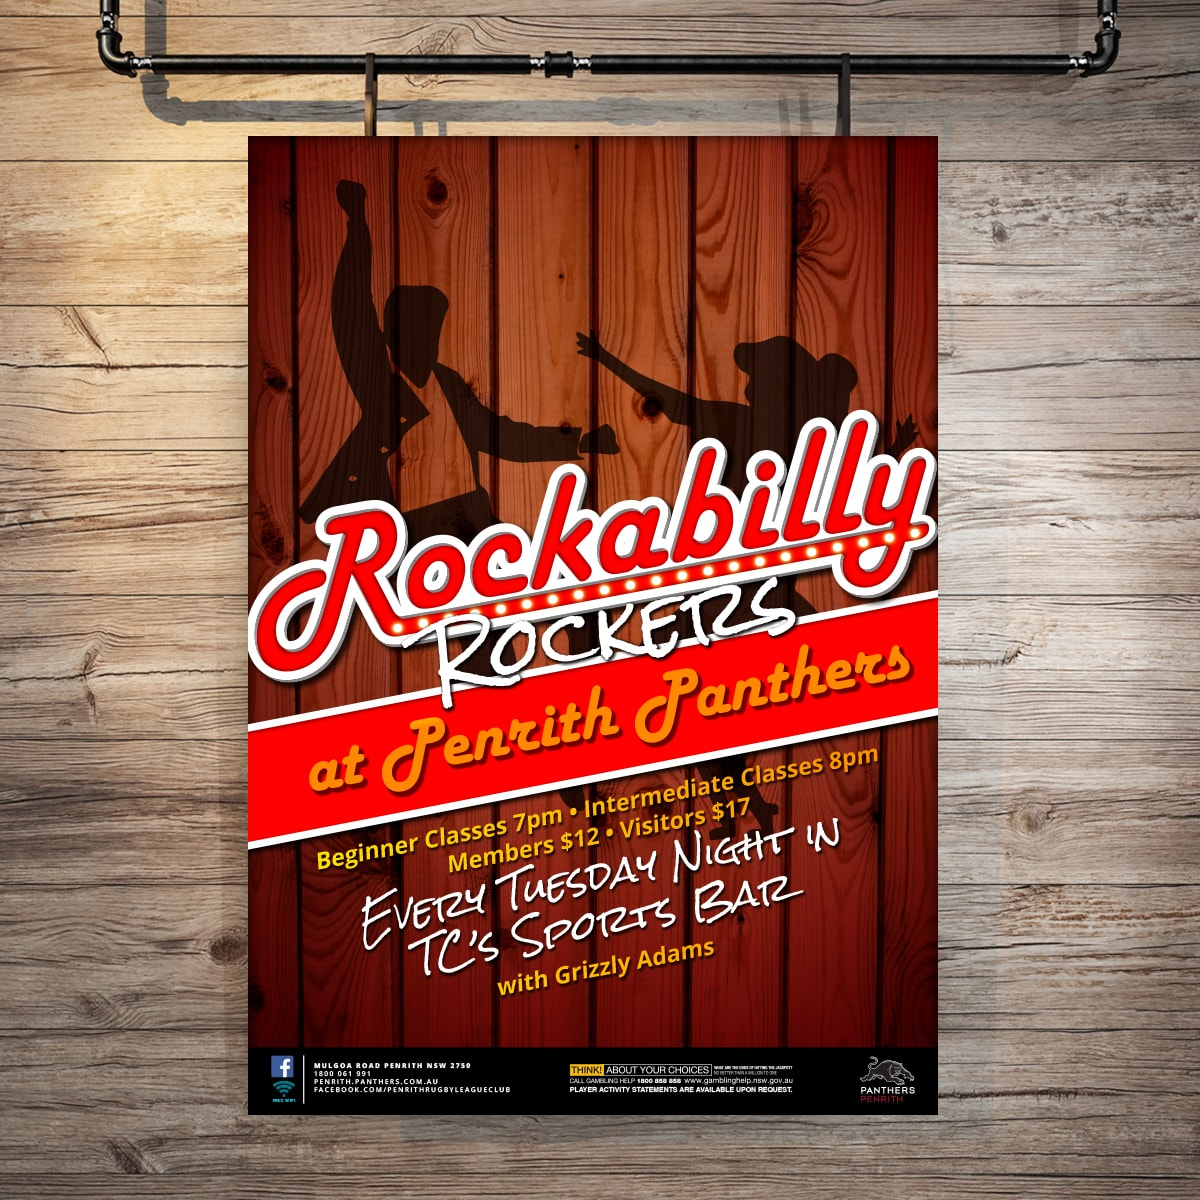 Rockabilly promotional point of sale POS Kit artwork graphic design for Penrith Panthers.